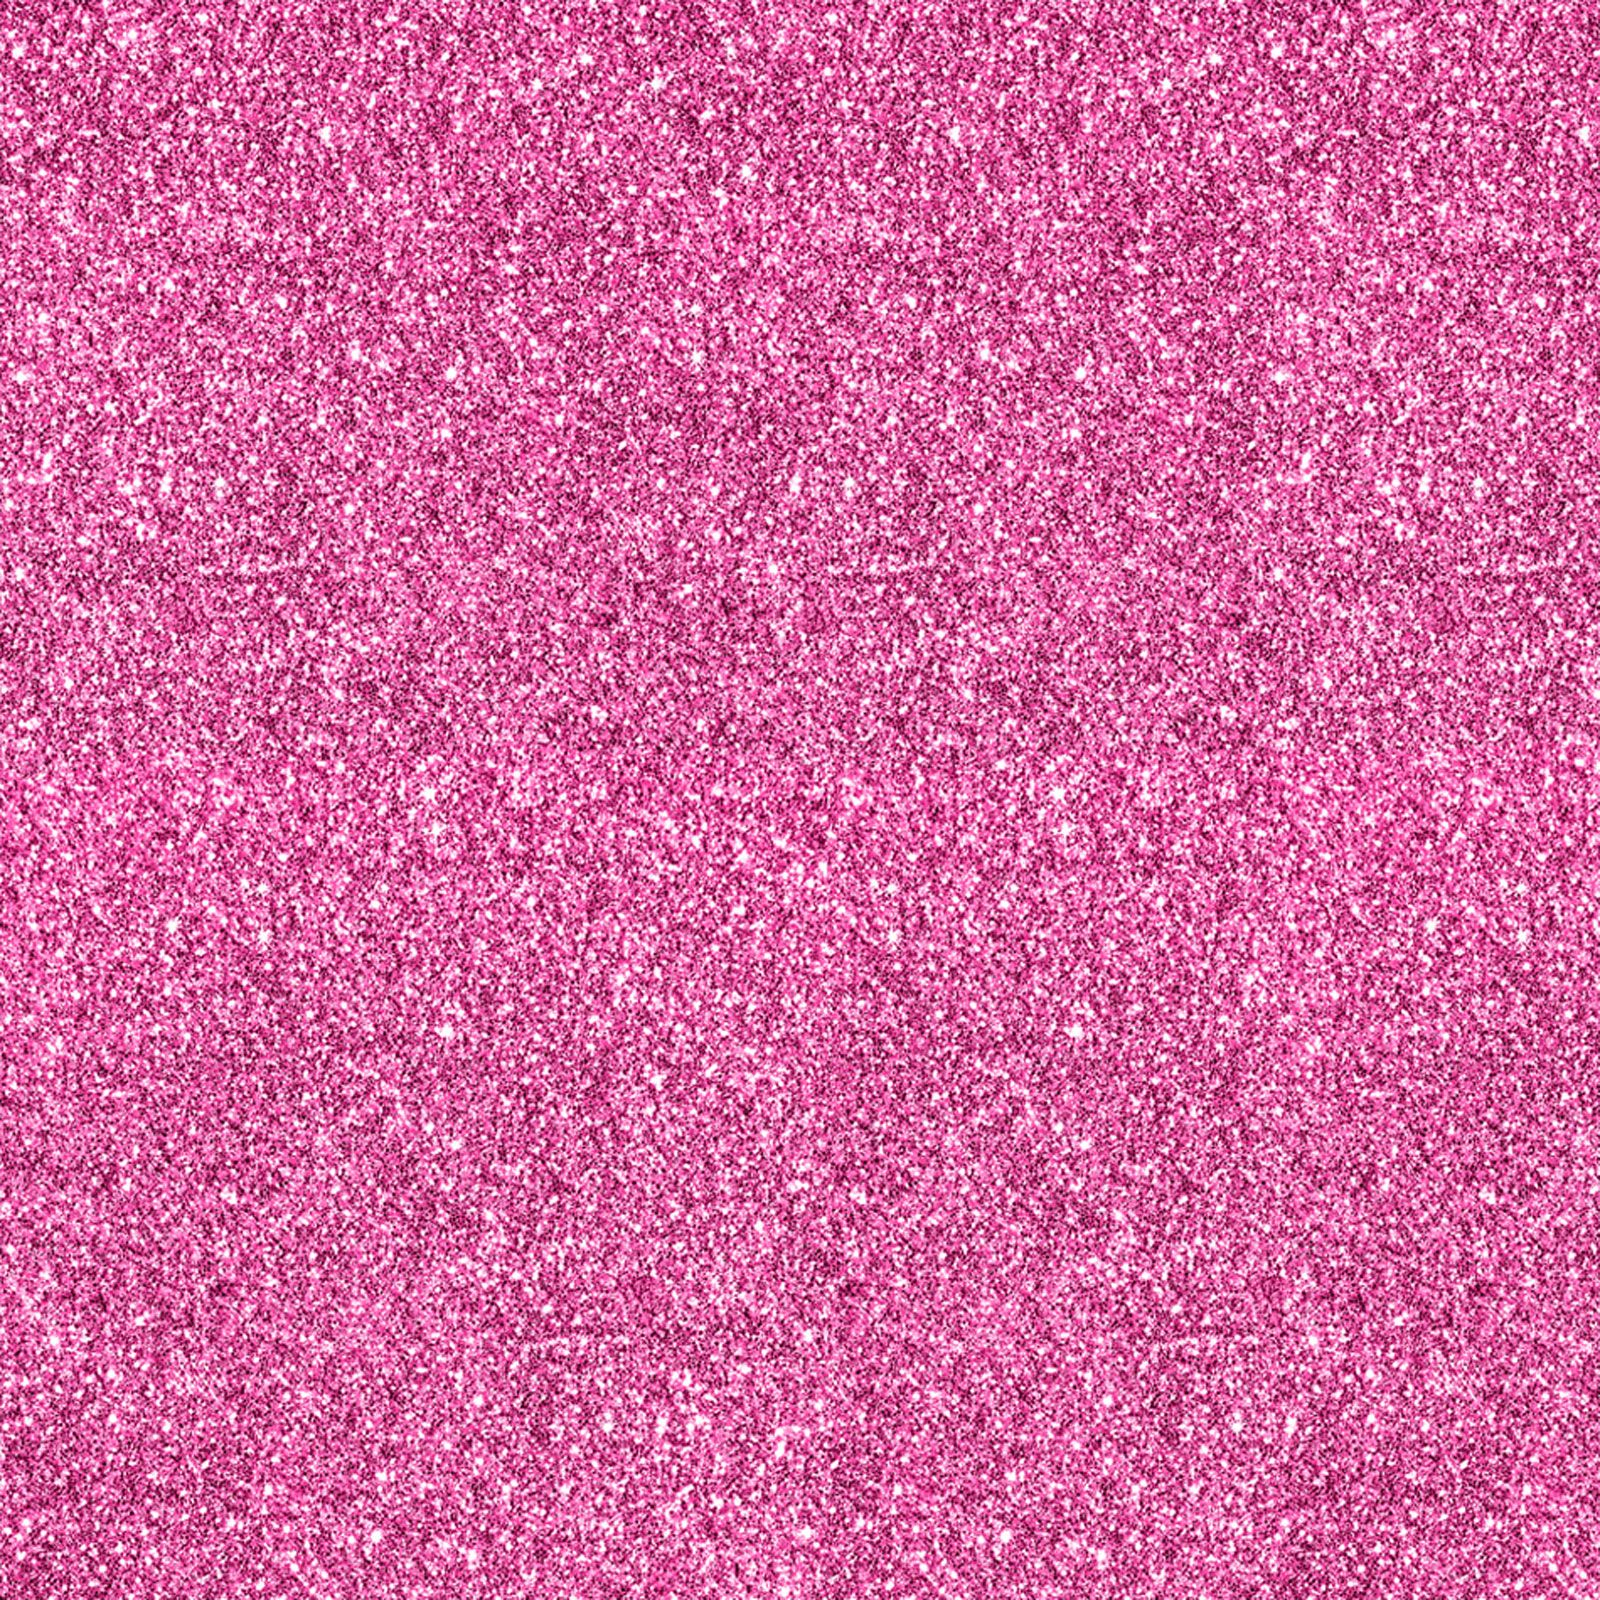 Sparkle Glitter Wallpaper – Ideal for Feature Walls Pink Gold Silver ...